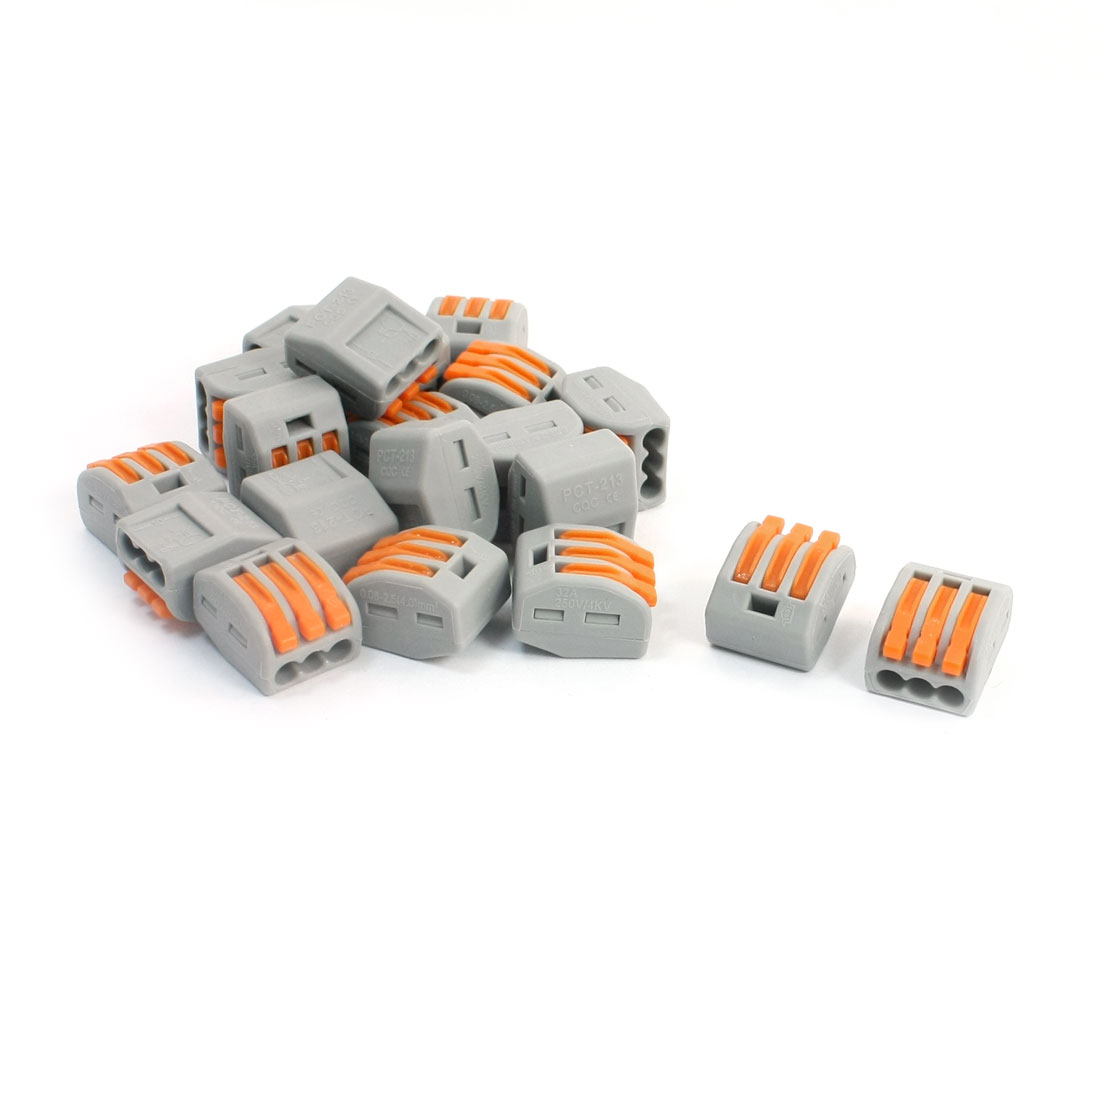 20-Pcs-3-Wire-Cable-Connect-Lever-Clamp-Lock-Terminal-Block-AC250V-32A